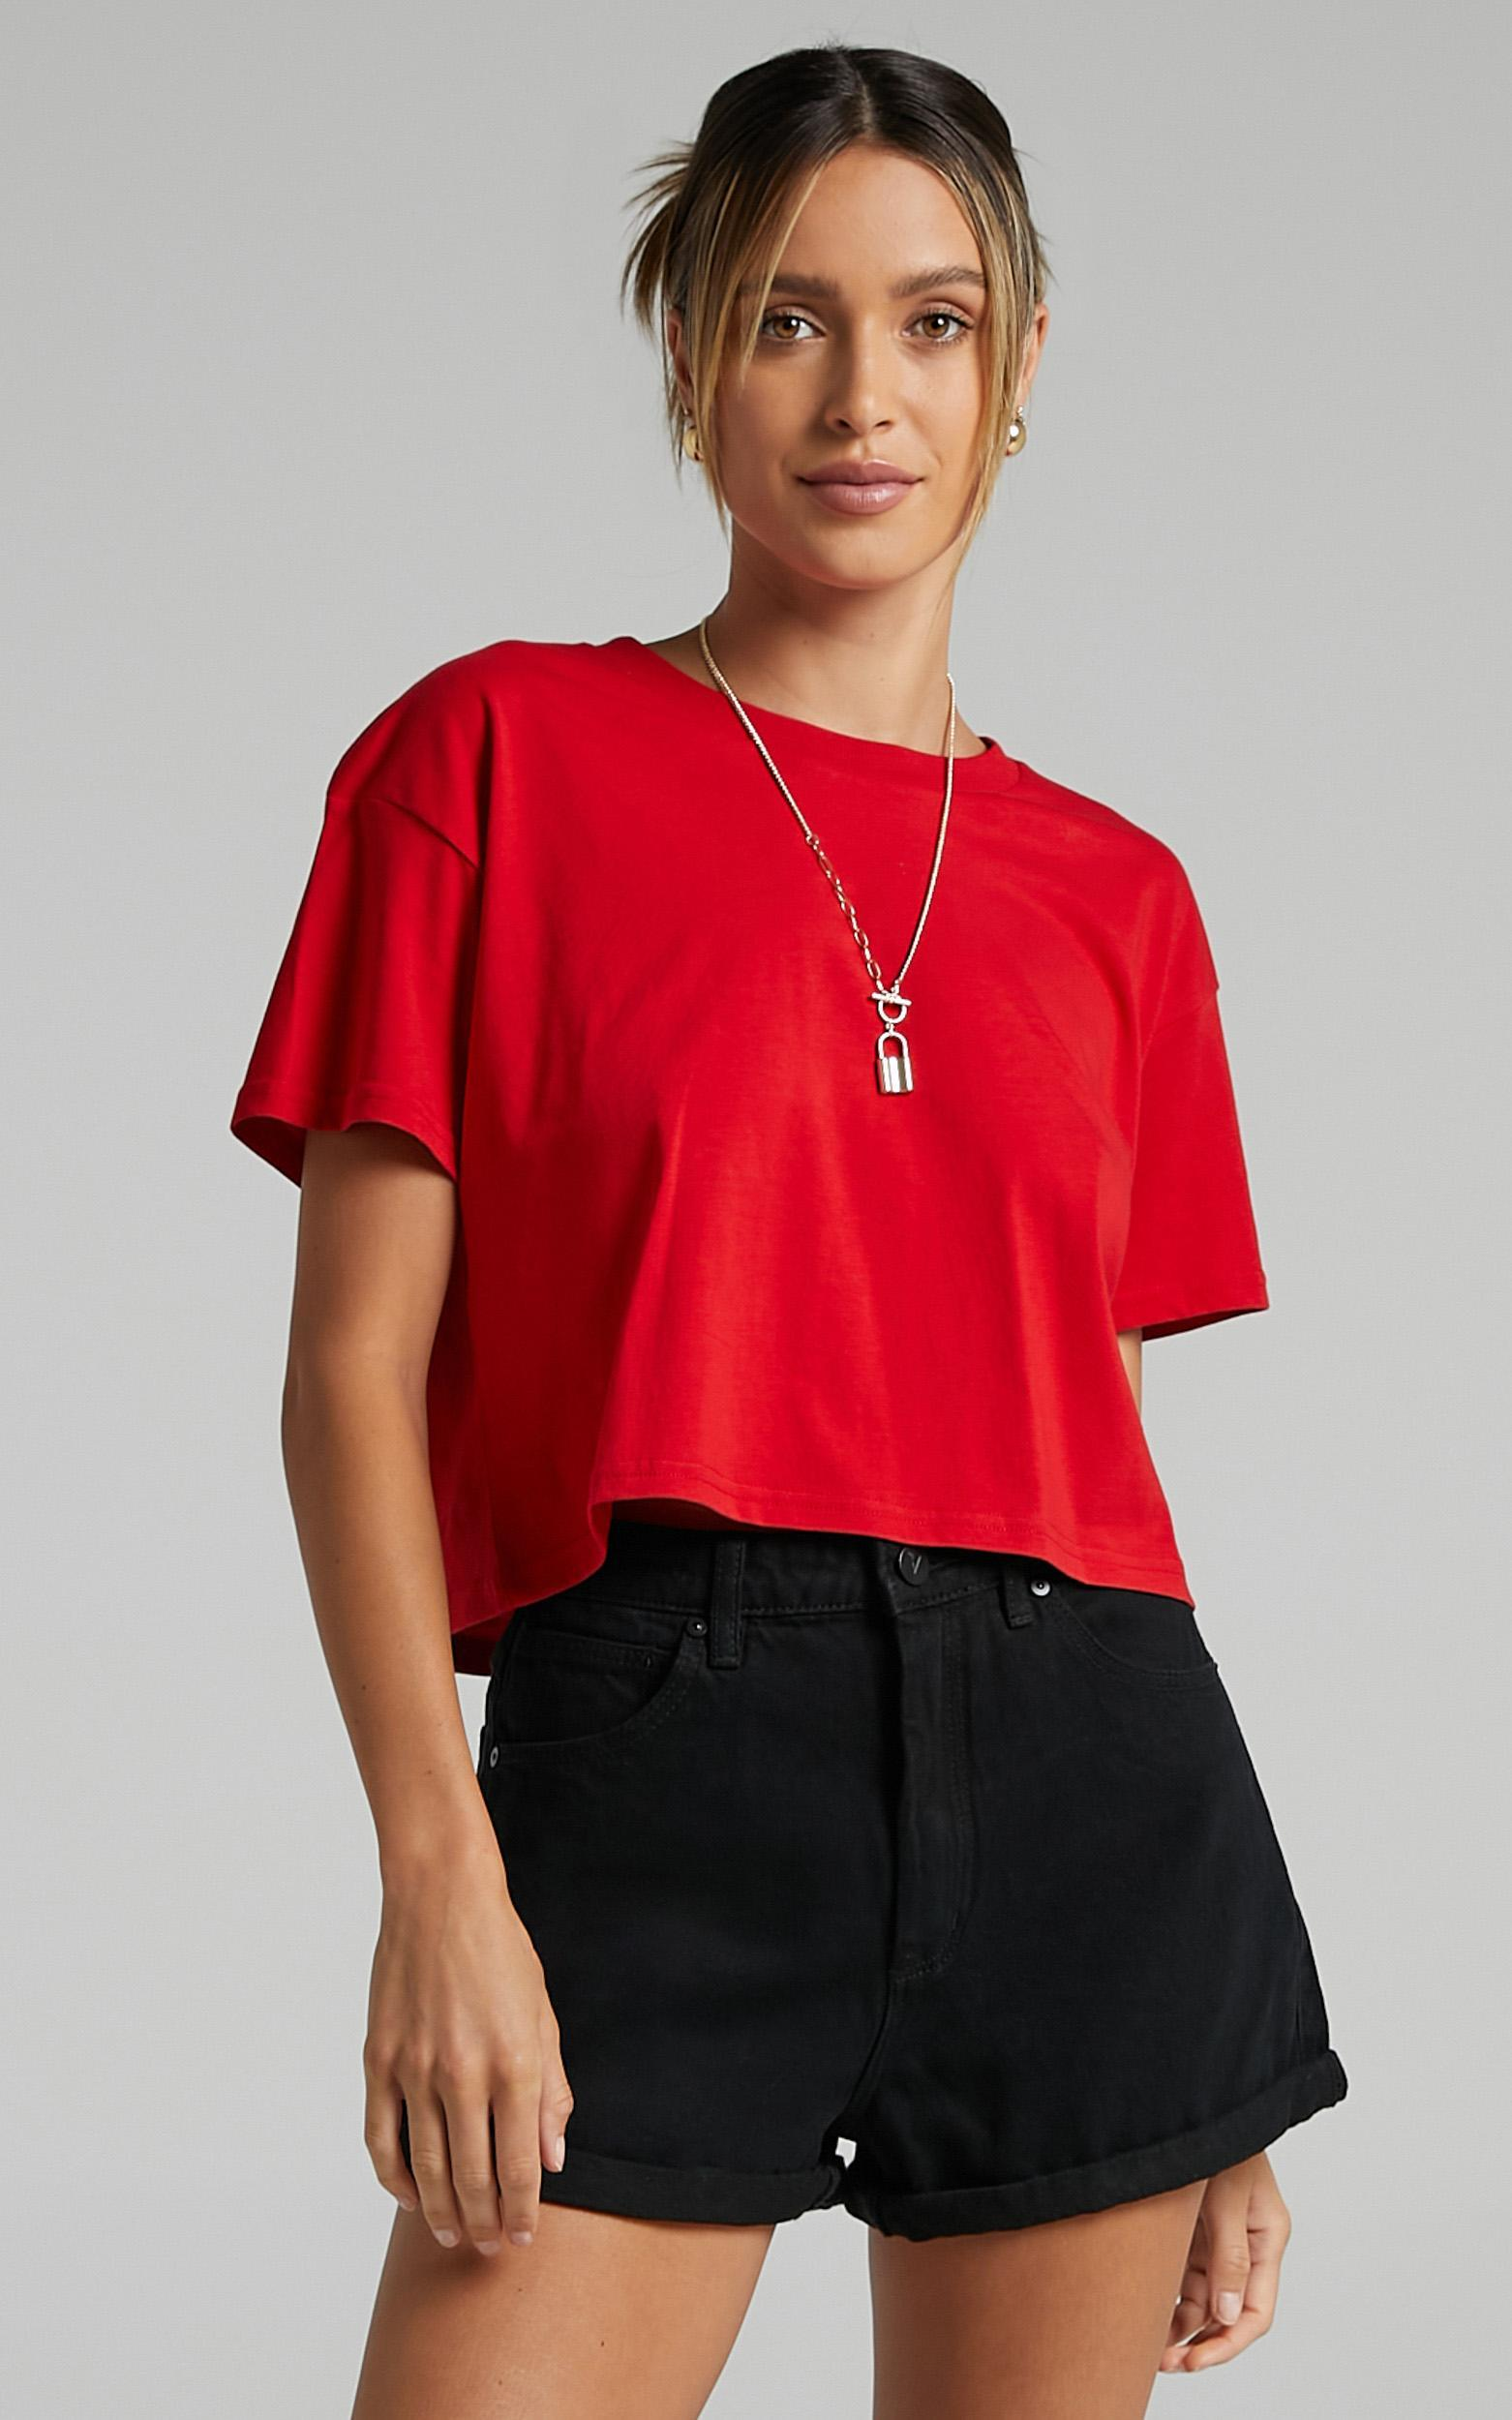 AS Colour - Crop Tee in Red - XS, Red, hi-res image number null